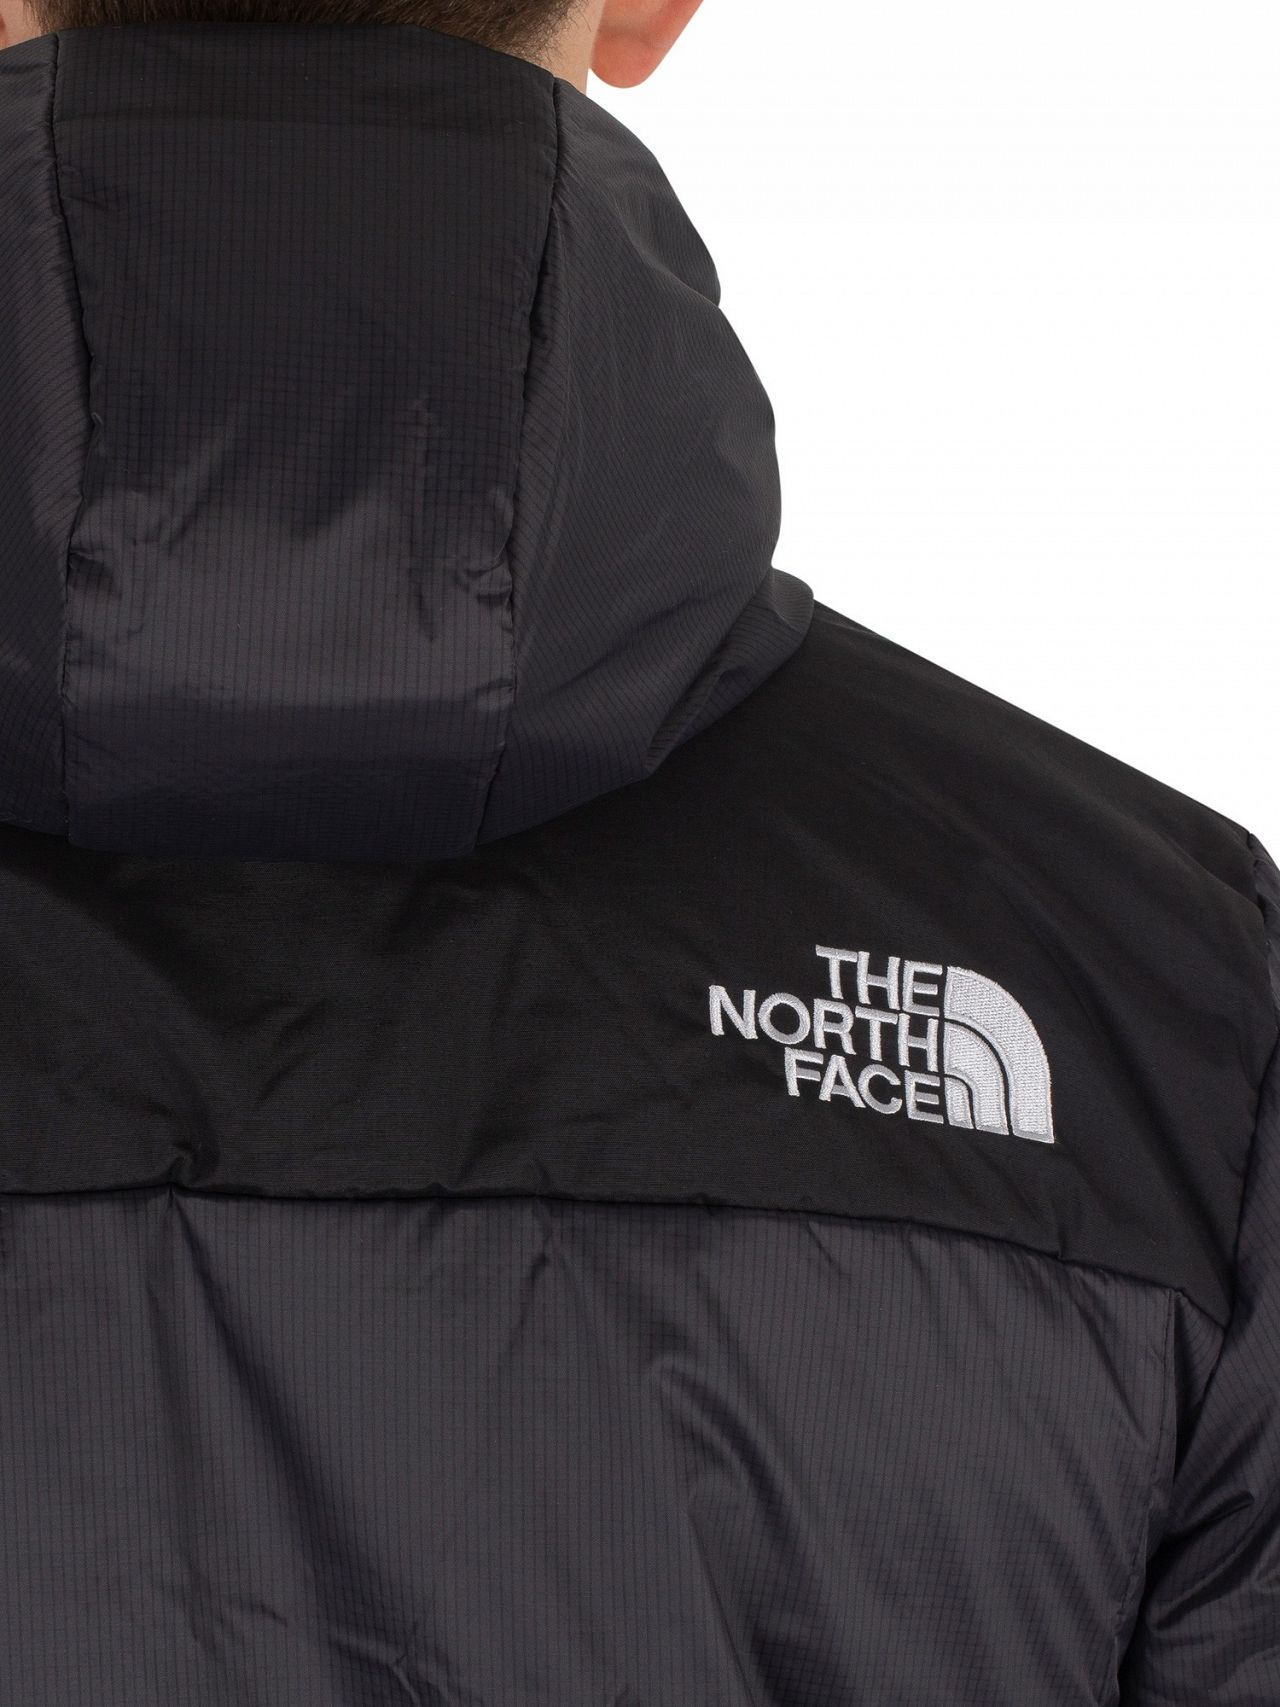 ... top quality the north face black light puffer jacket f6ae9 d015e 1316b9bc8